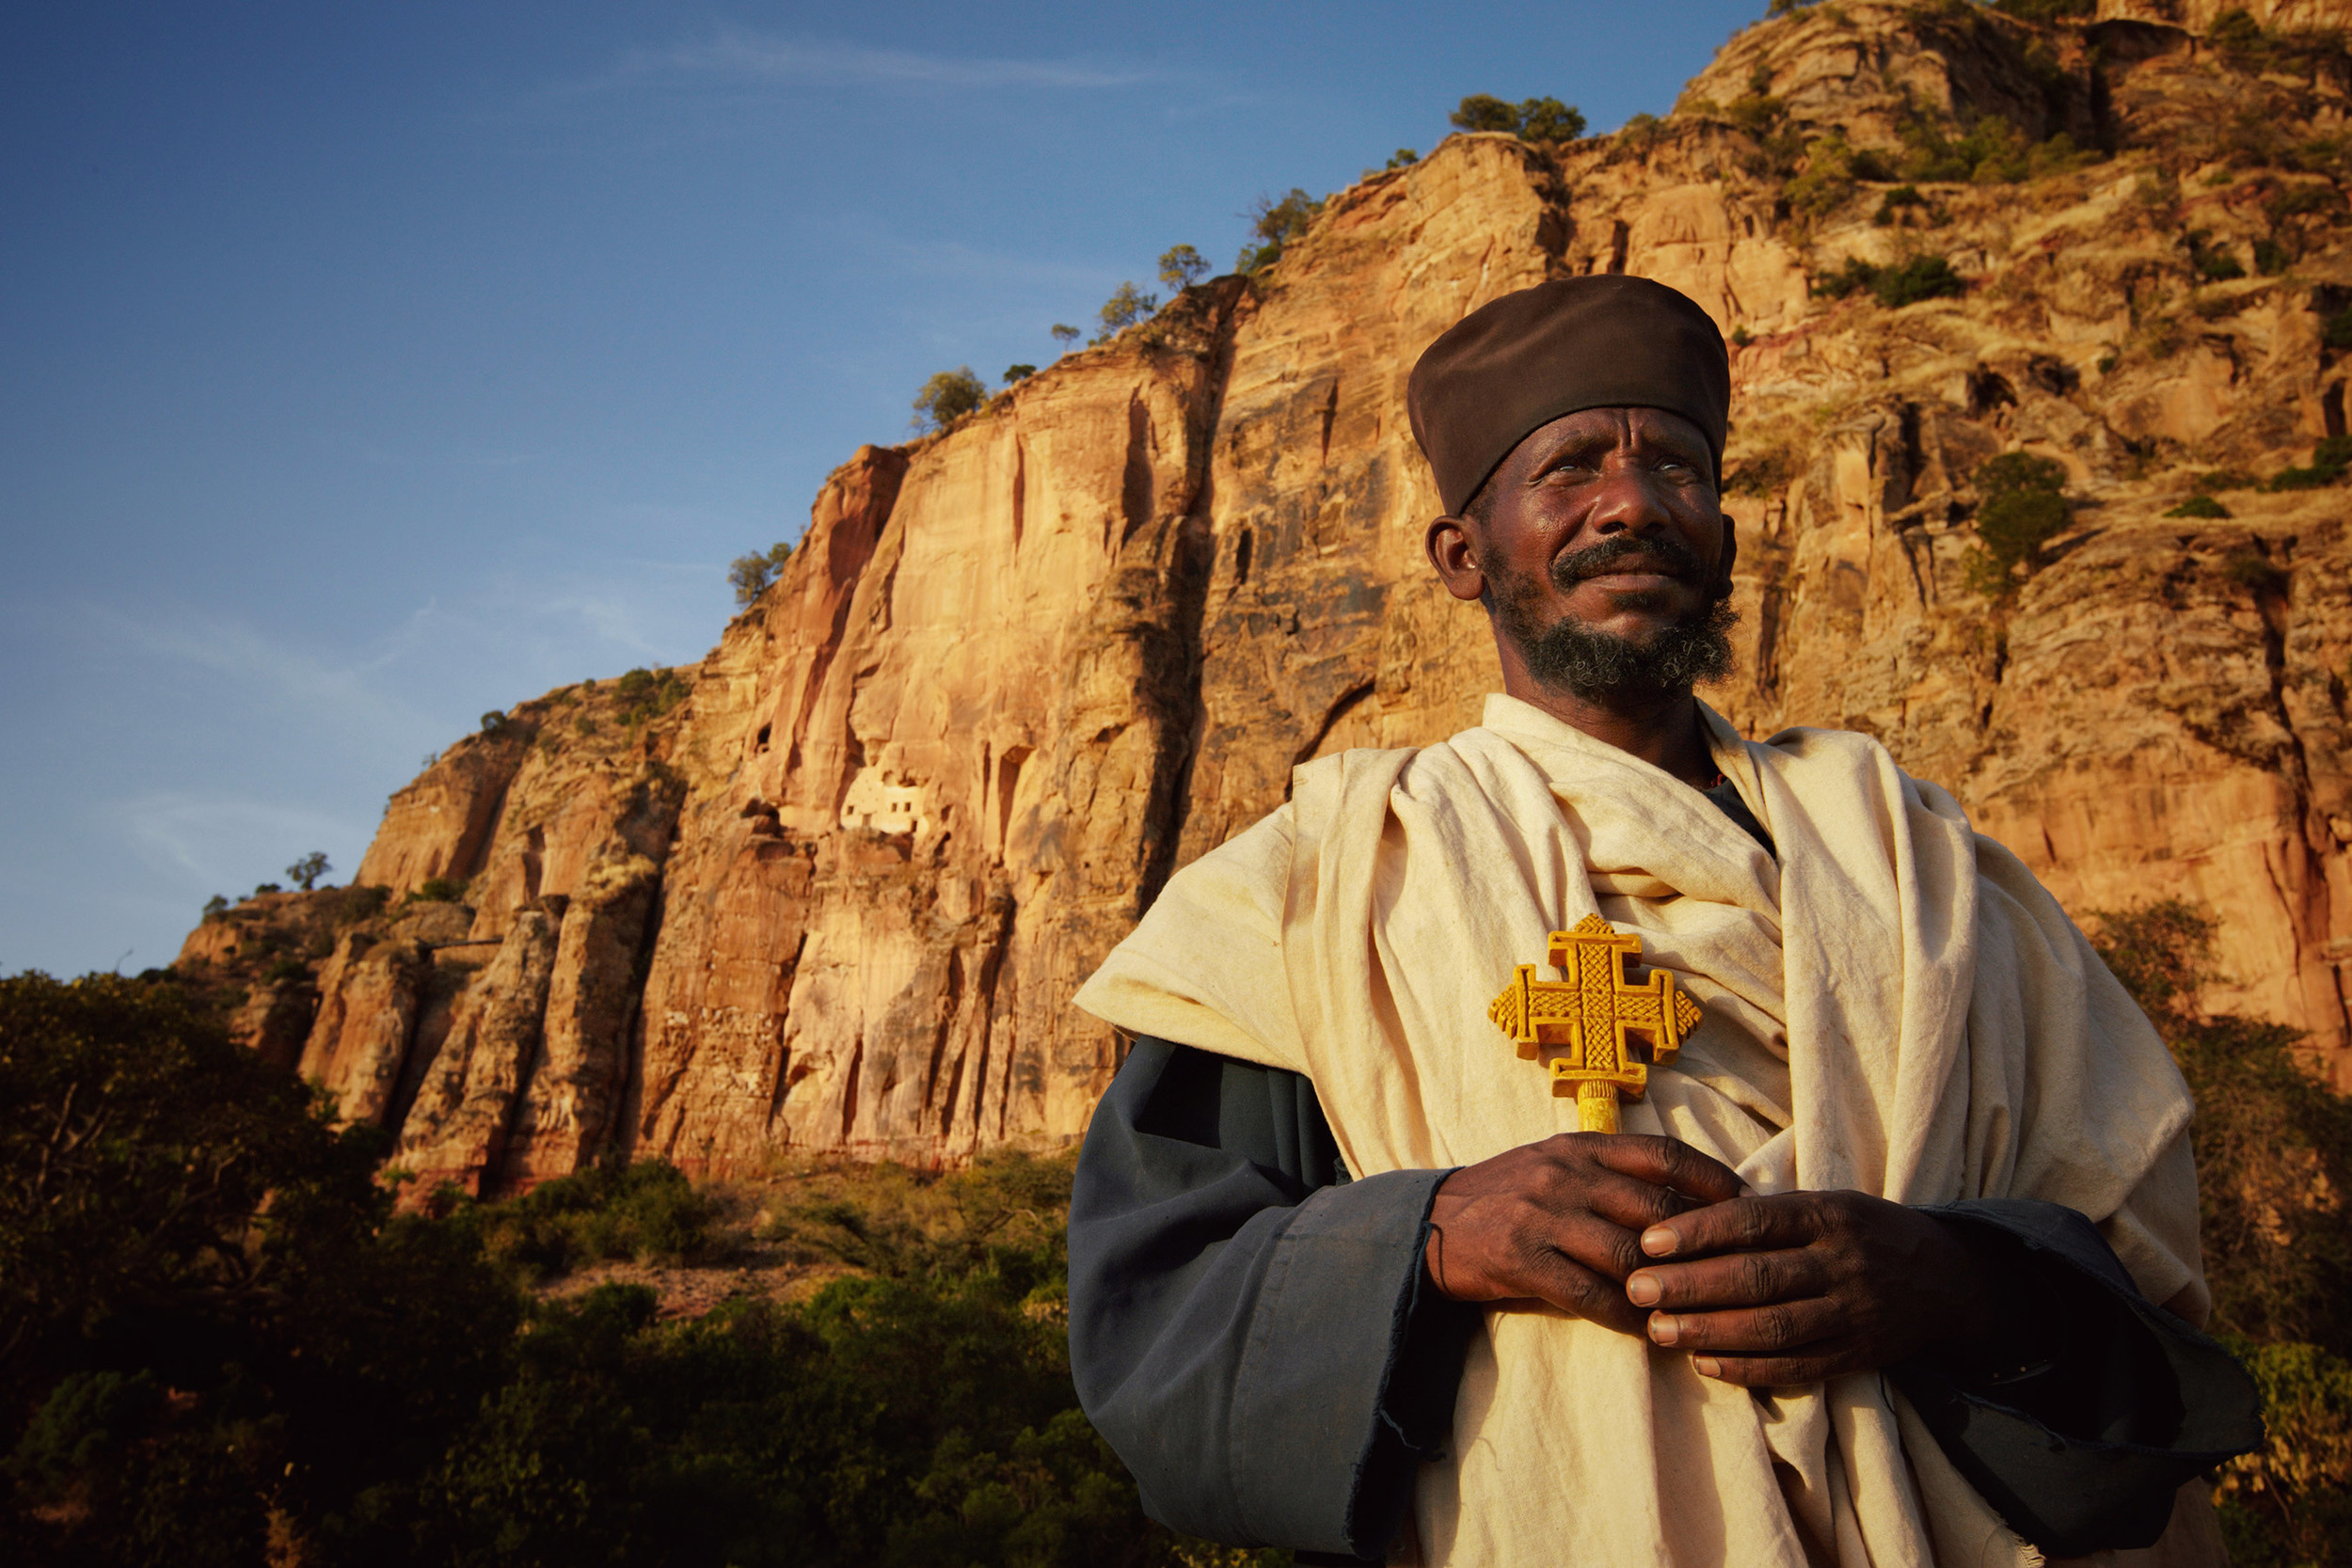 Ethiopian priest in front of a cliff with a rock church carved in it